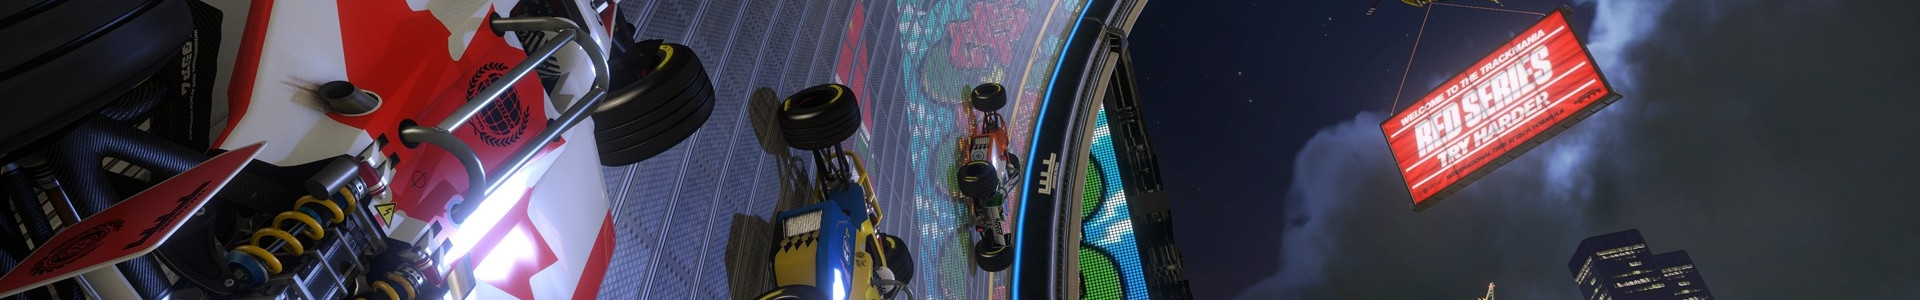 Banner media of Trackmania Turbo video game.